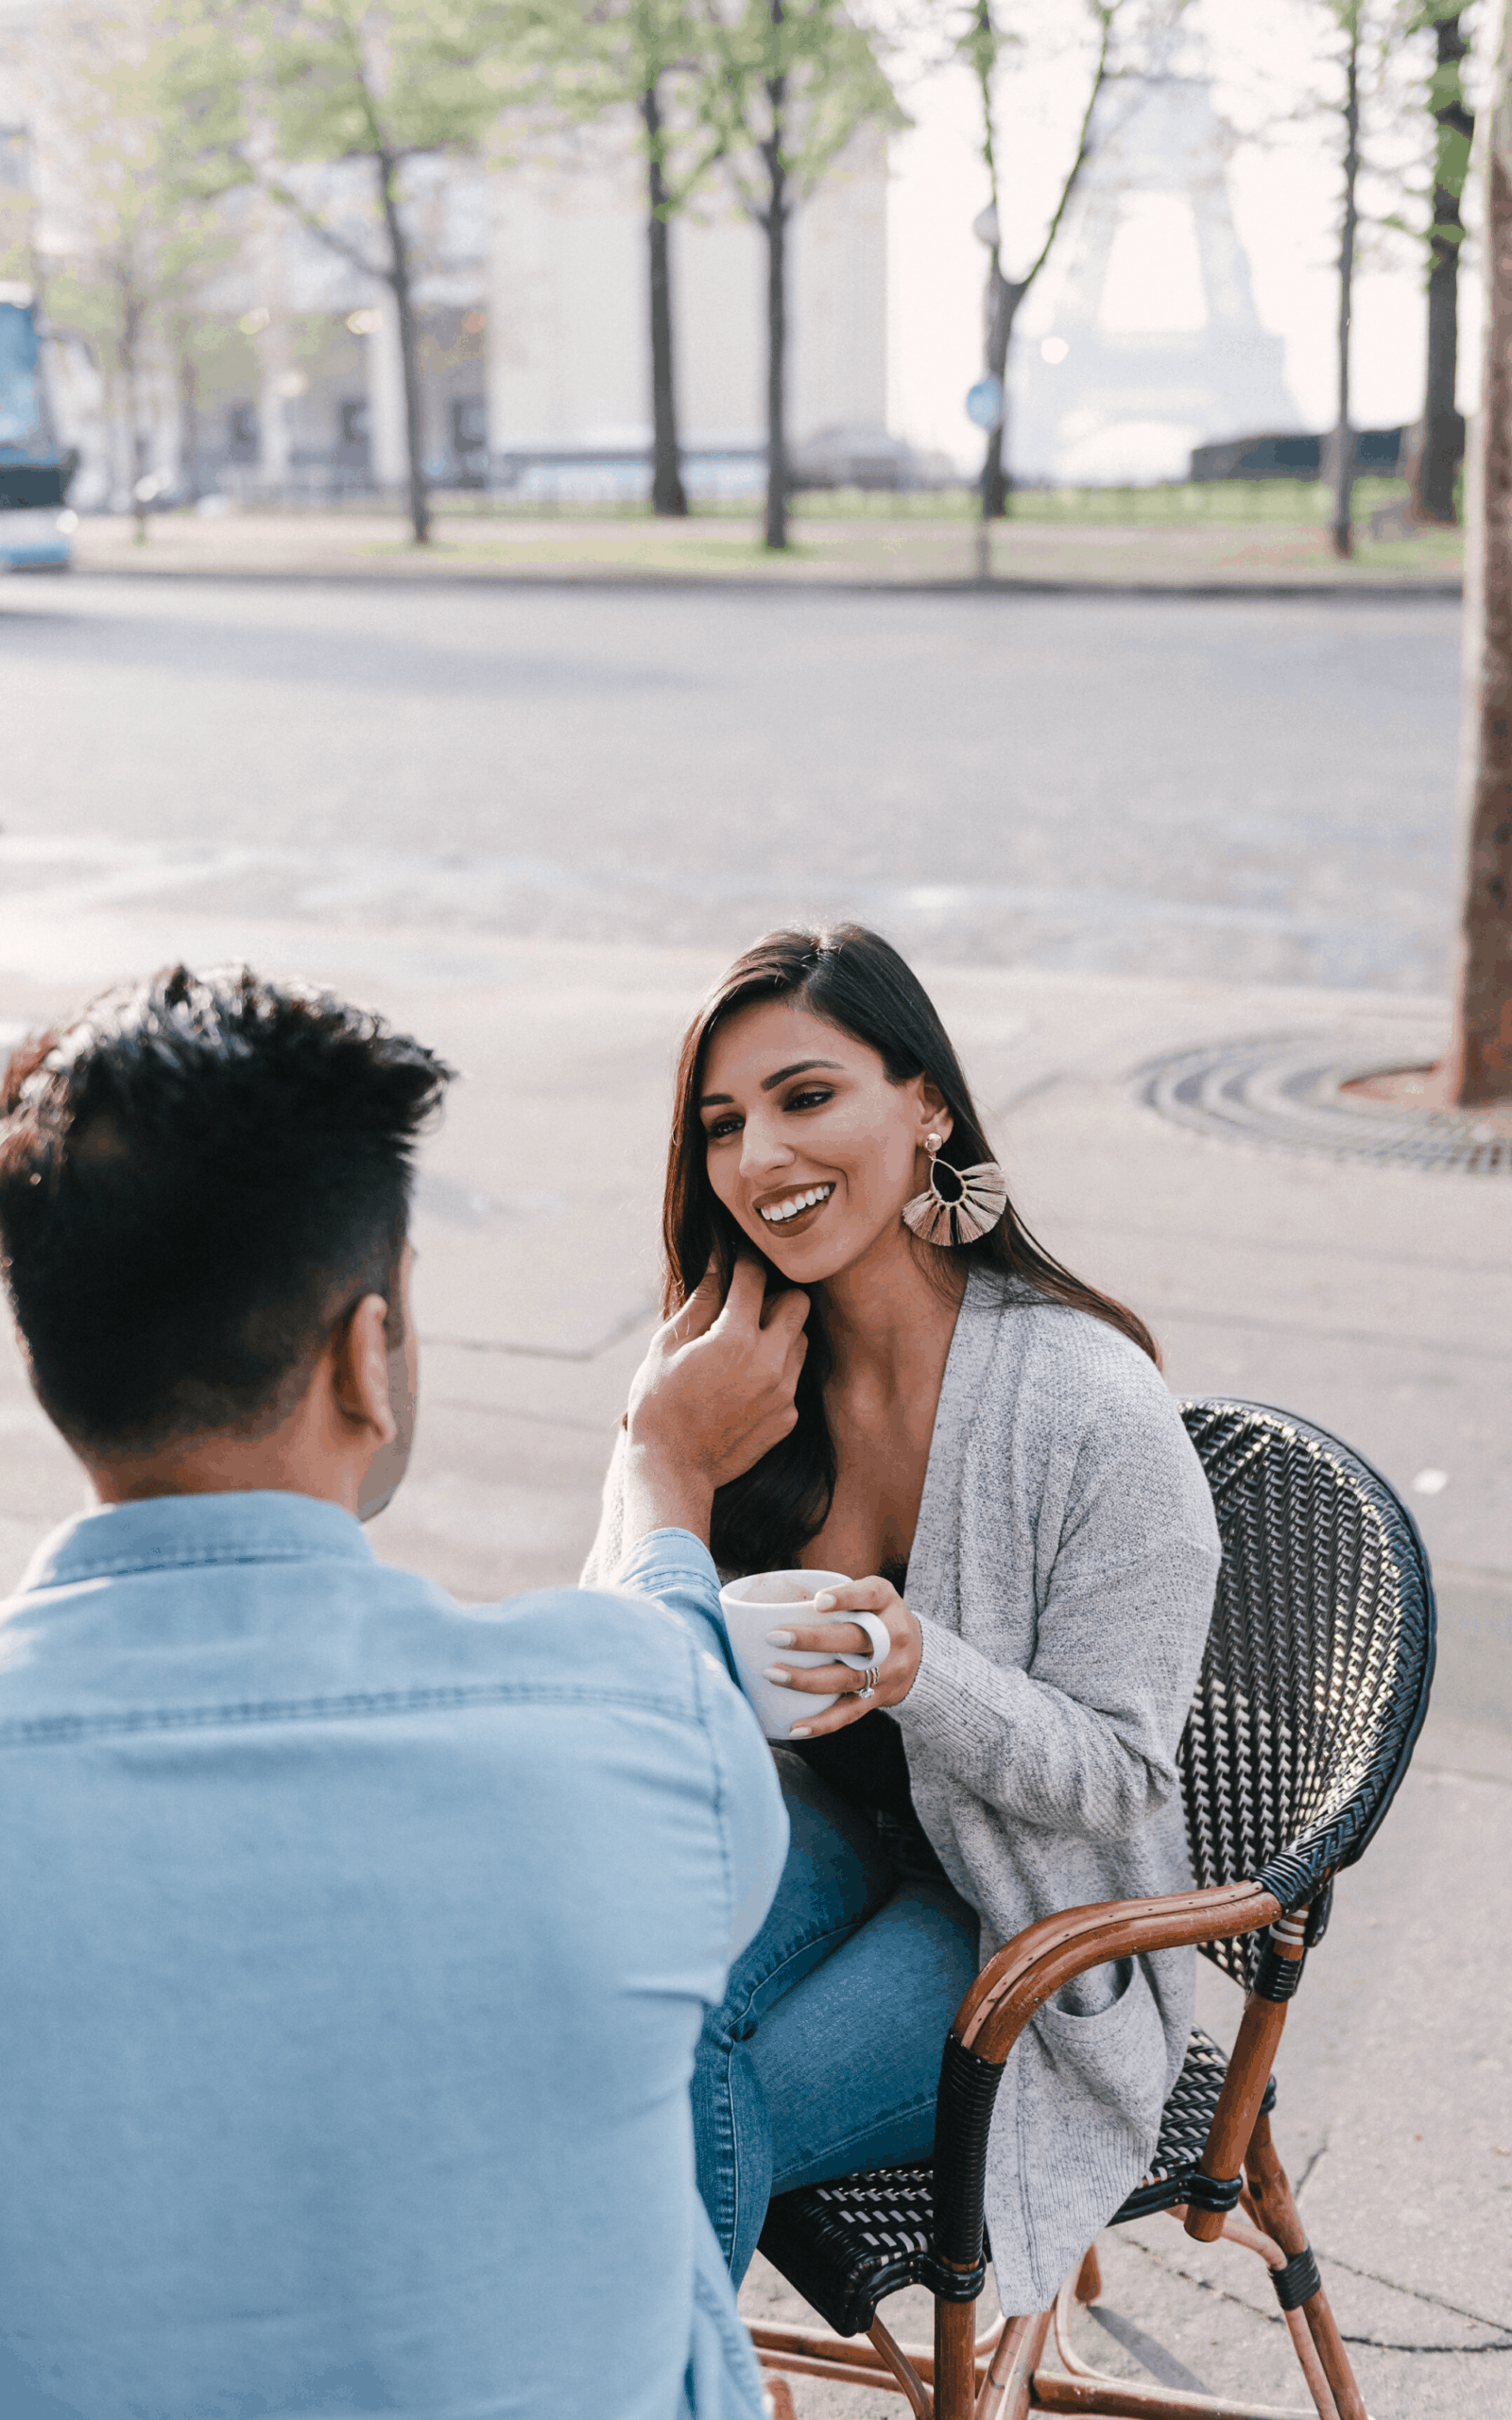 man and woman on a date at an outdoor cafe